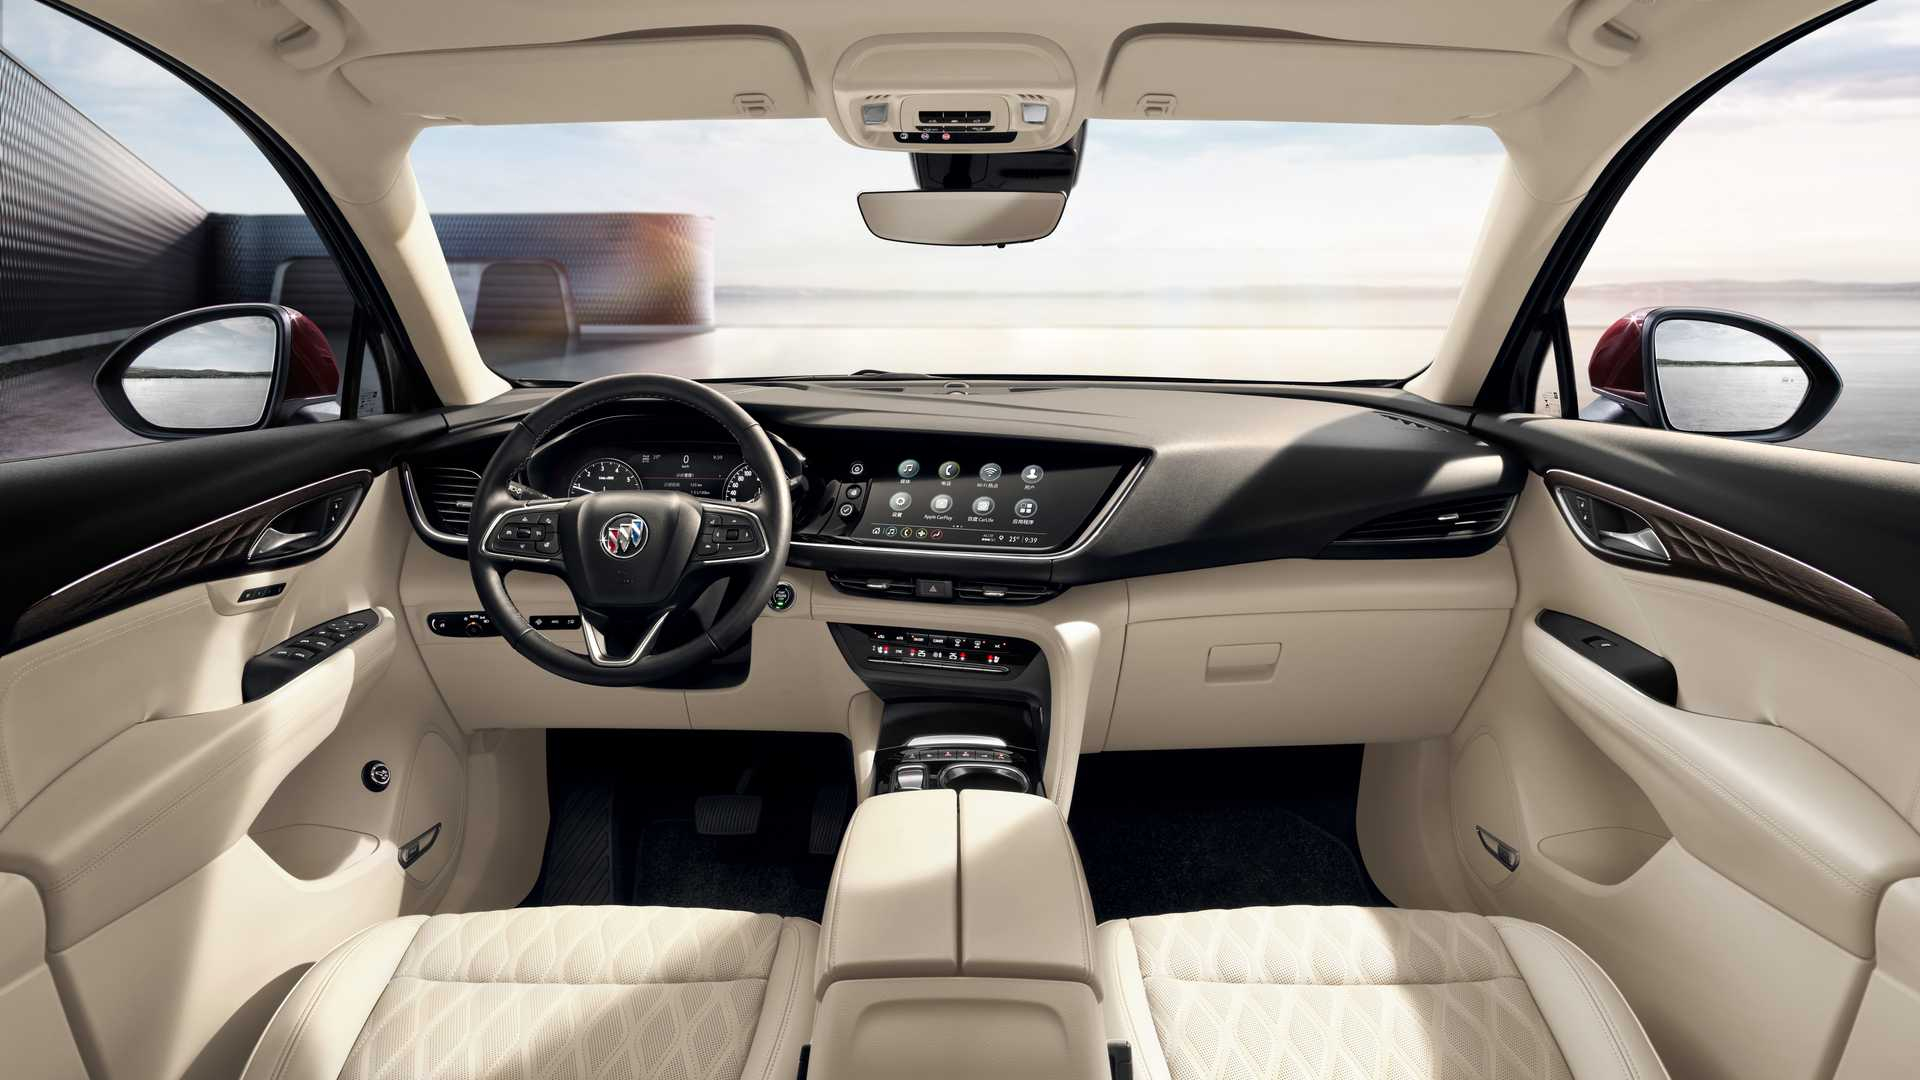 2021 Buick Envision Reveals Sophisticated Interior In 2022 Buick Envision Hp, Incentives, Infotainment Manual